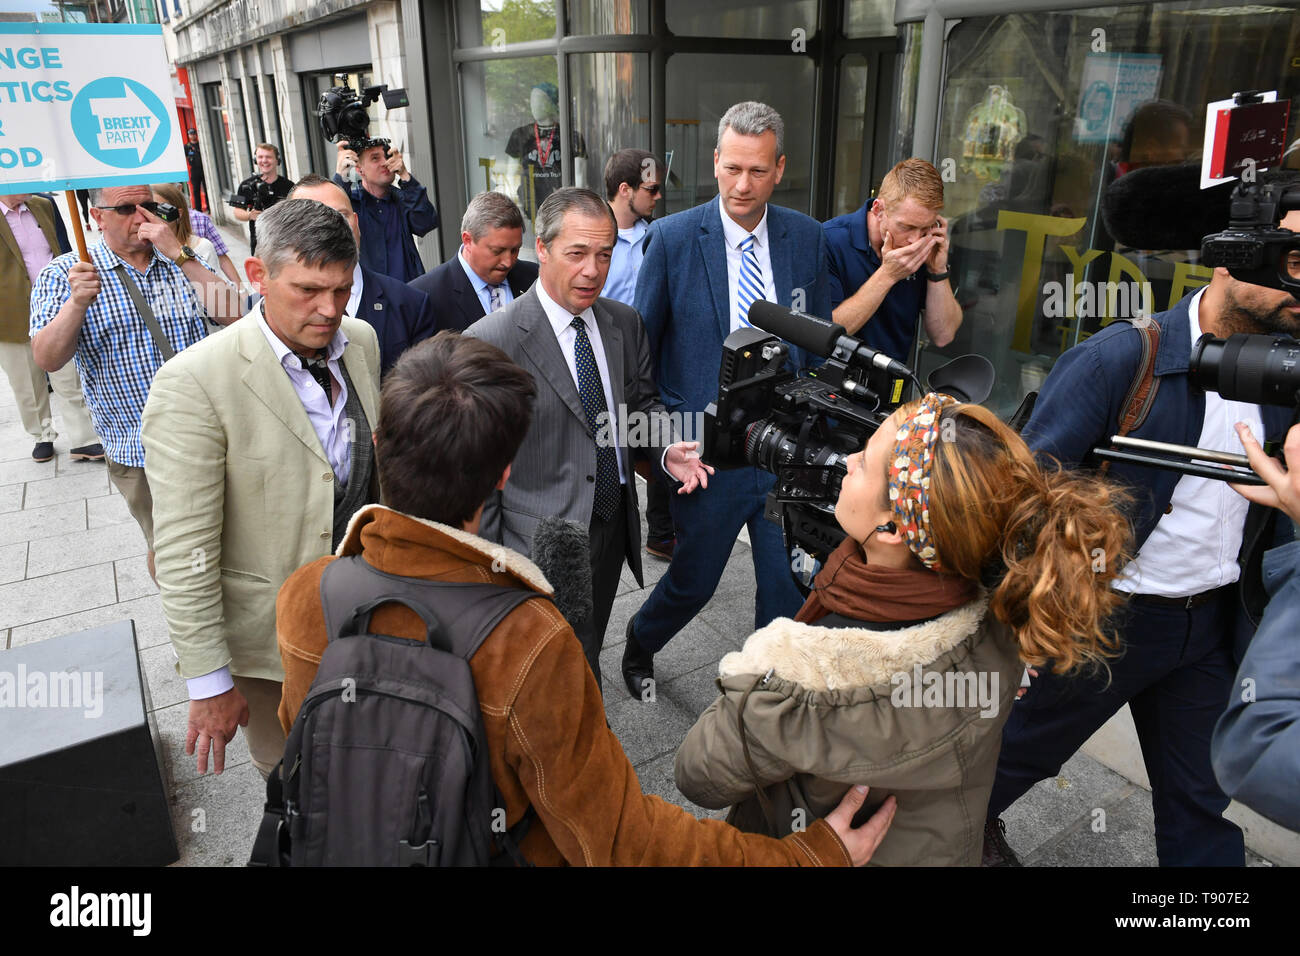 Brexit Party leader Nigel Farage with the party's lead candidate in Wales, Nathan Gill, during a walkabout in Merthyr Tydfil. Stock Photo